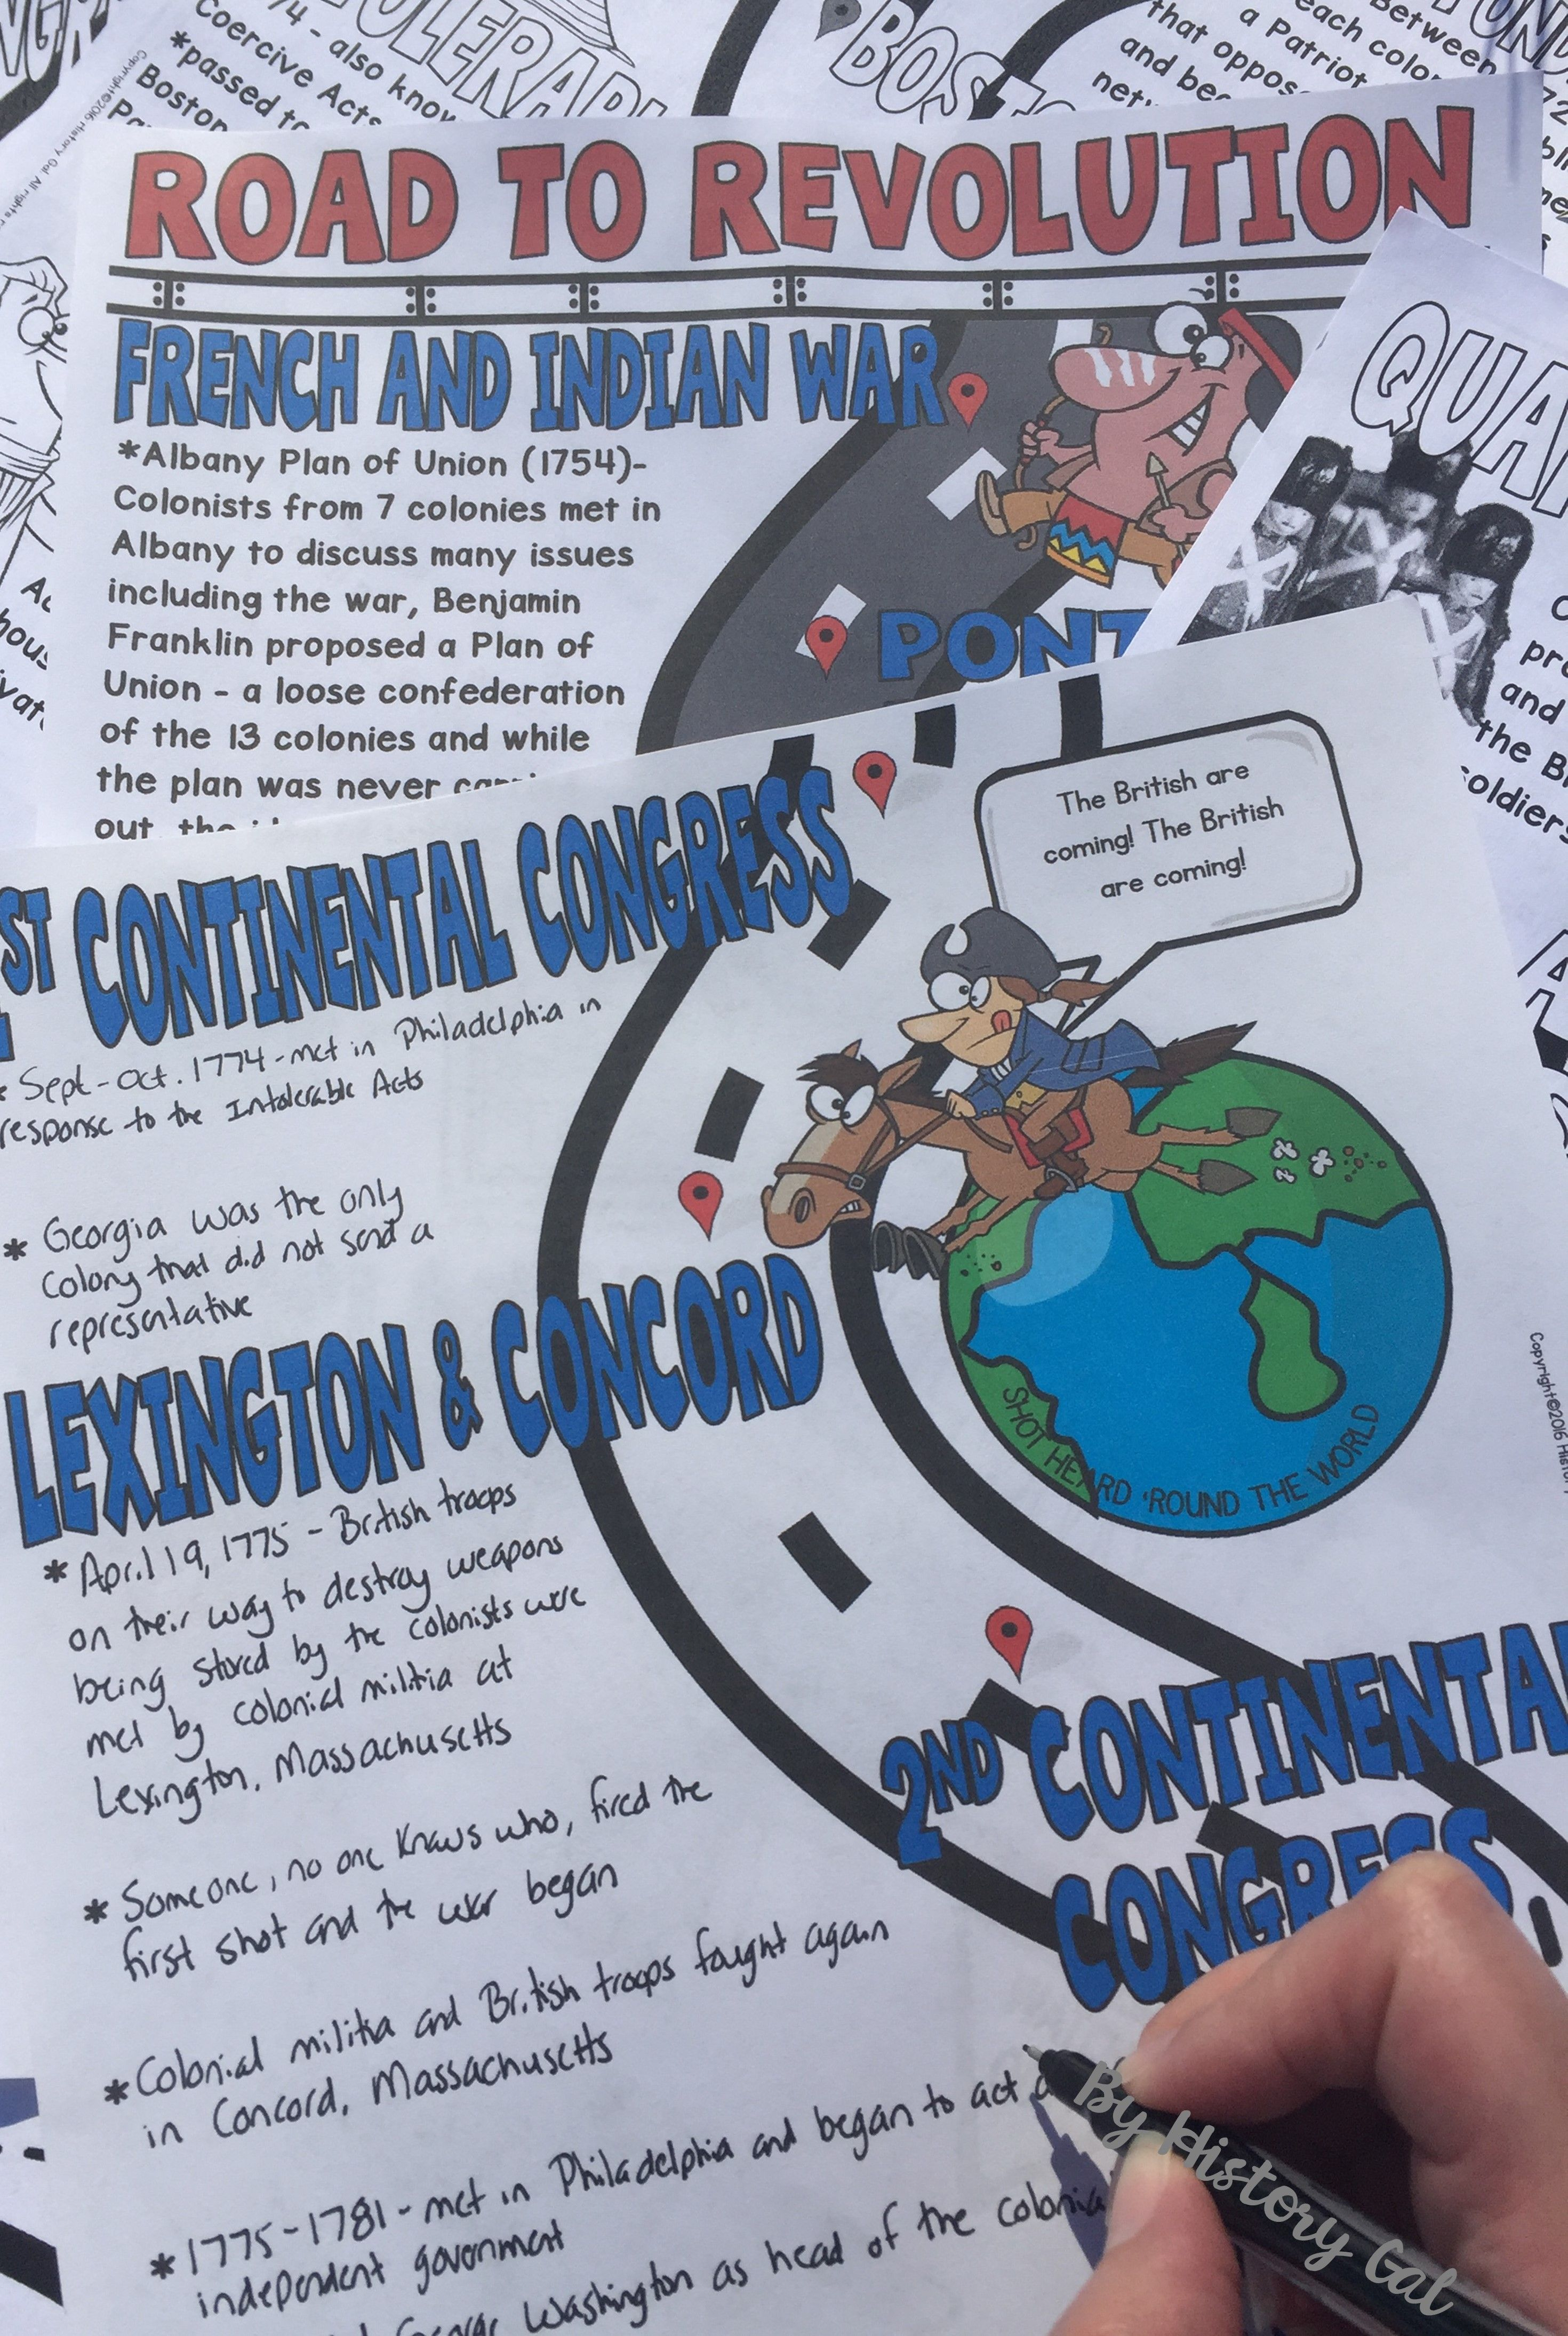 American Revolution Road To Revolution Doodle Notes